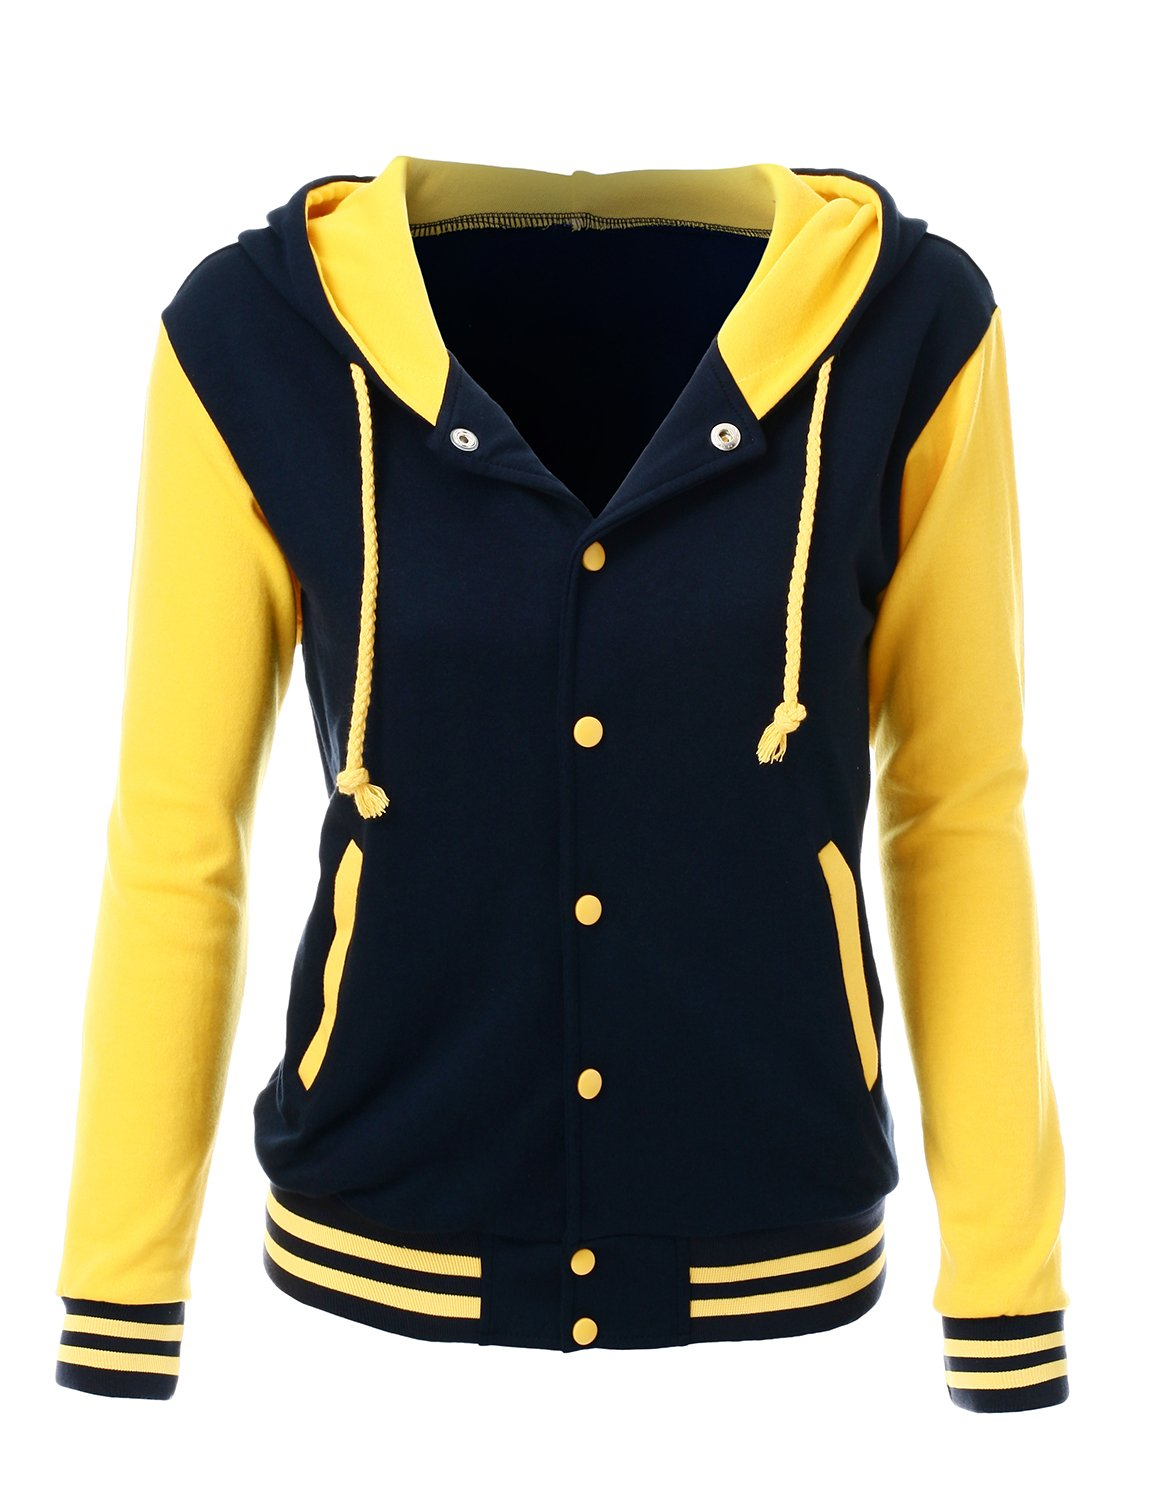 Stylish Color Contrast Long Sleeves Hoodie Varsity Jacket Navy Yellow 3XL by Xpril